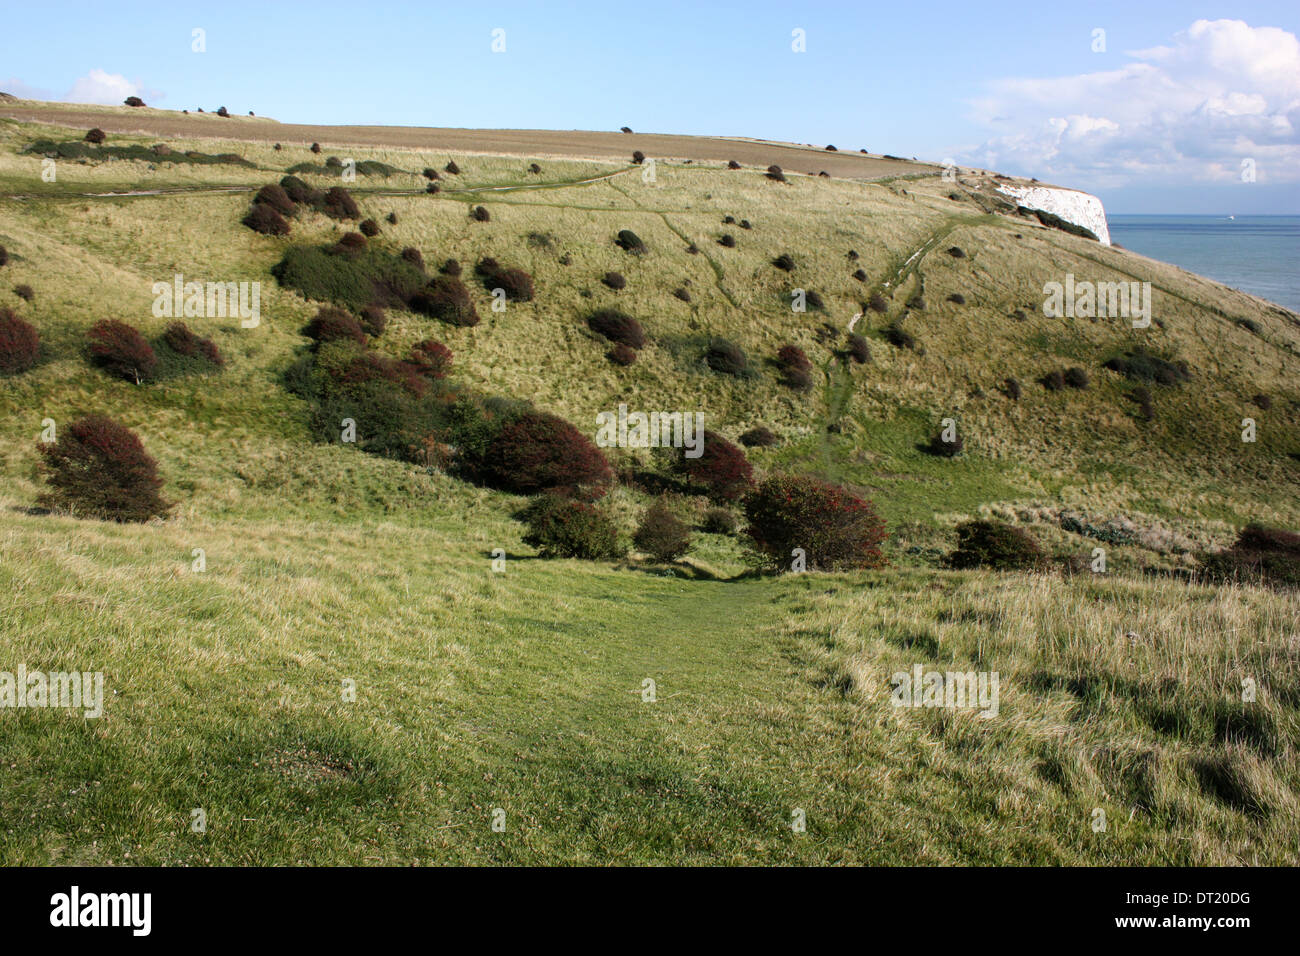 a view of the hills and  meadows along the top of the white cliffs - Stock Image